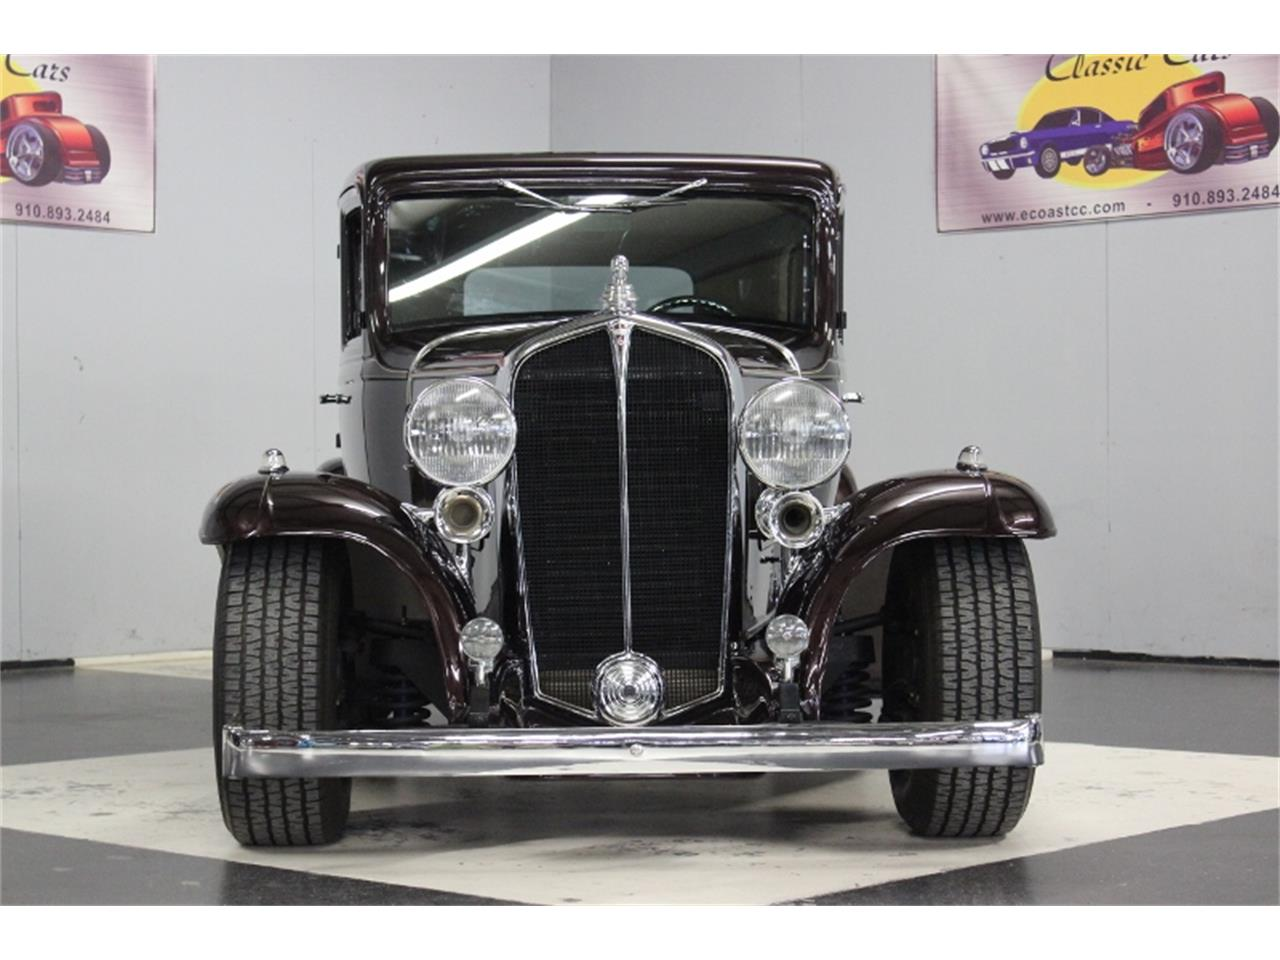 Large Picture of 1932 Pontiac Sedan located in Lillington North Carolina - $45,000.00 Offered by East Coast Classic Cars - OTPB